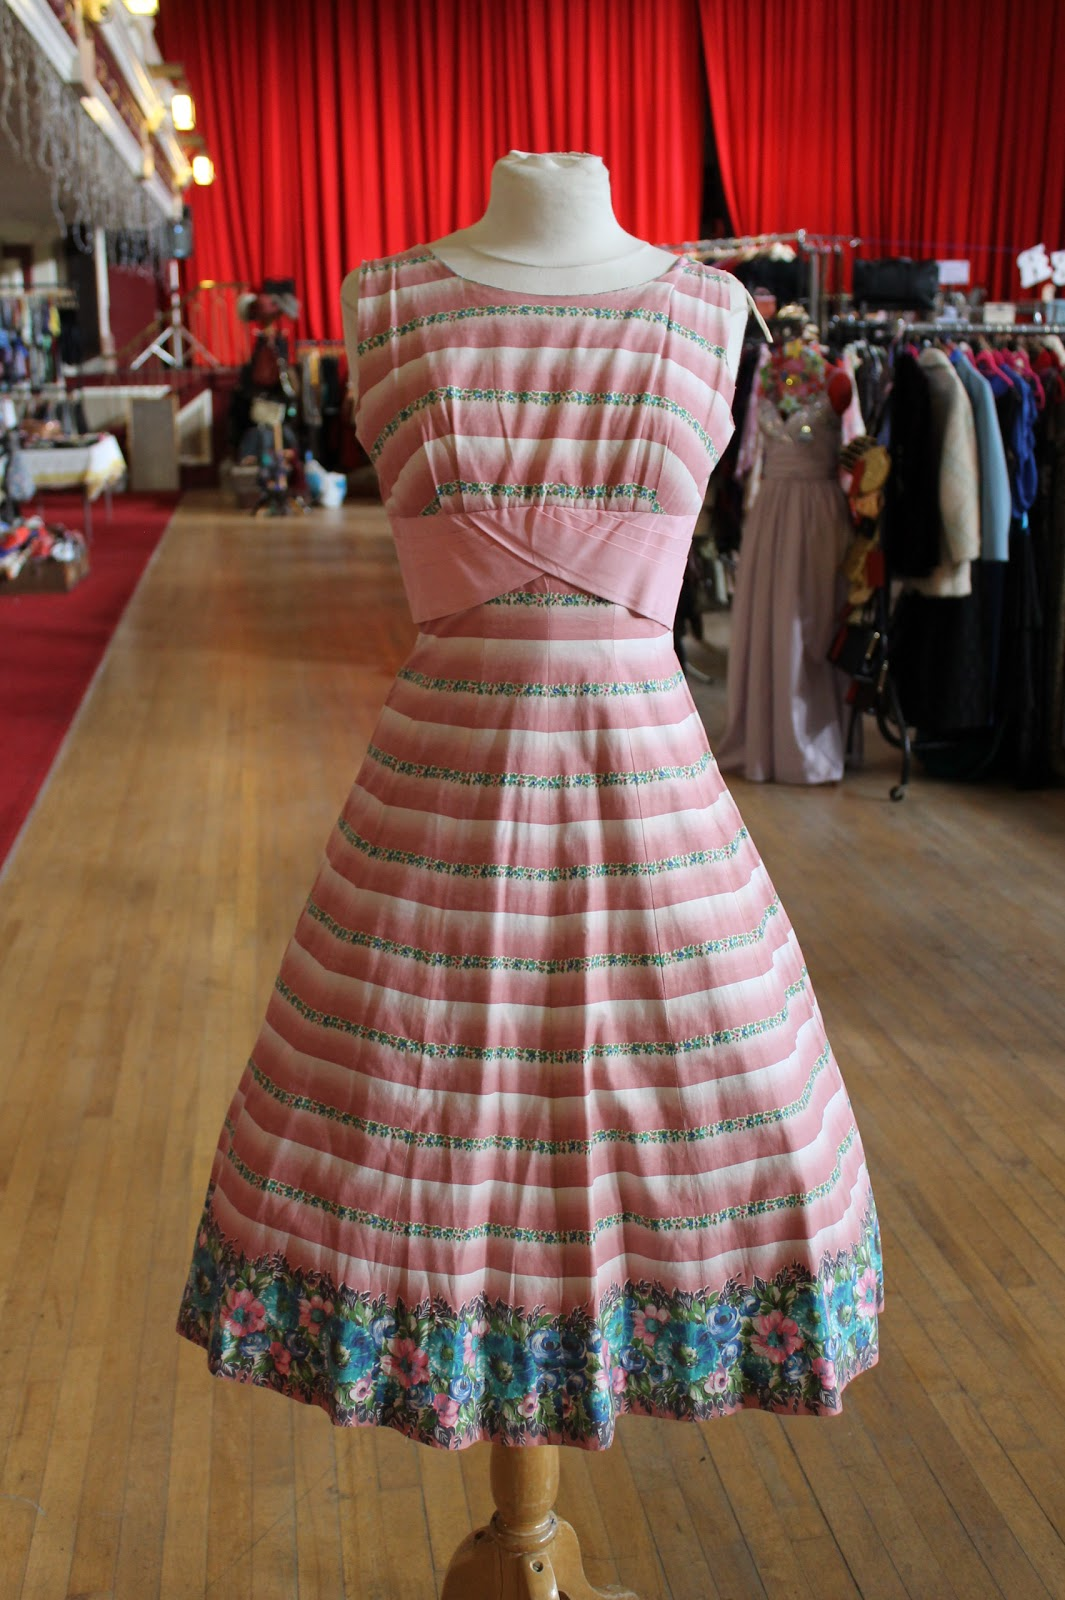 Retro Revolution Where To Find Vintage Clothing In: LouLou's Vintage Fair: Dating Vintage Dresses: 1950s